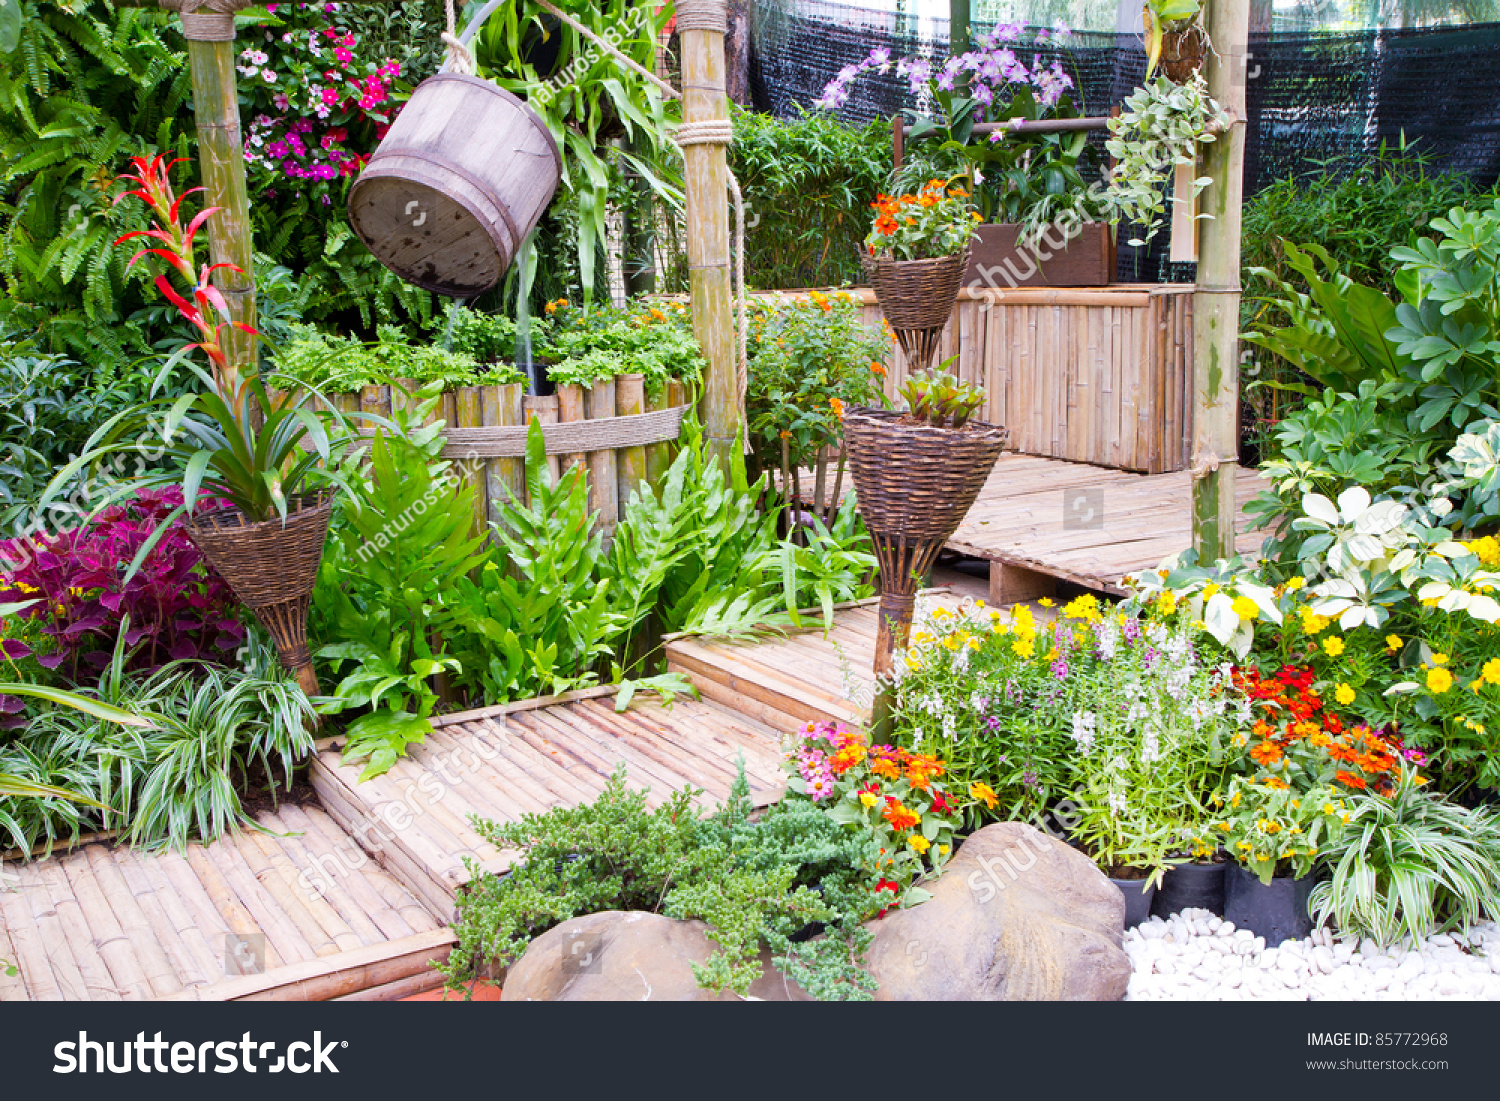 Beautiful garden home exterior stock photo 85772968 for Home garden pictures